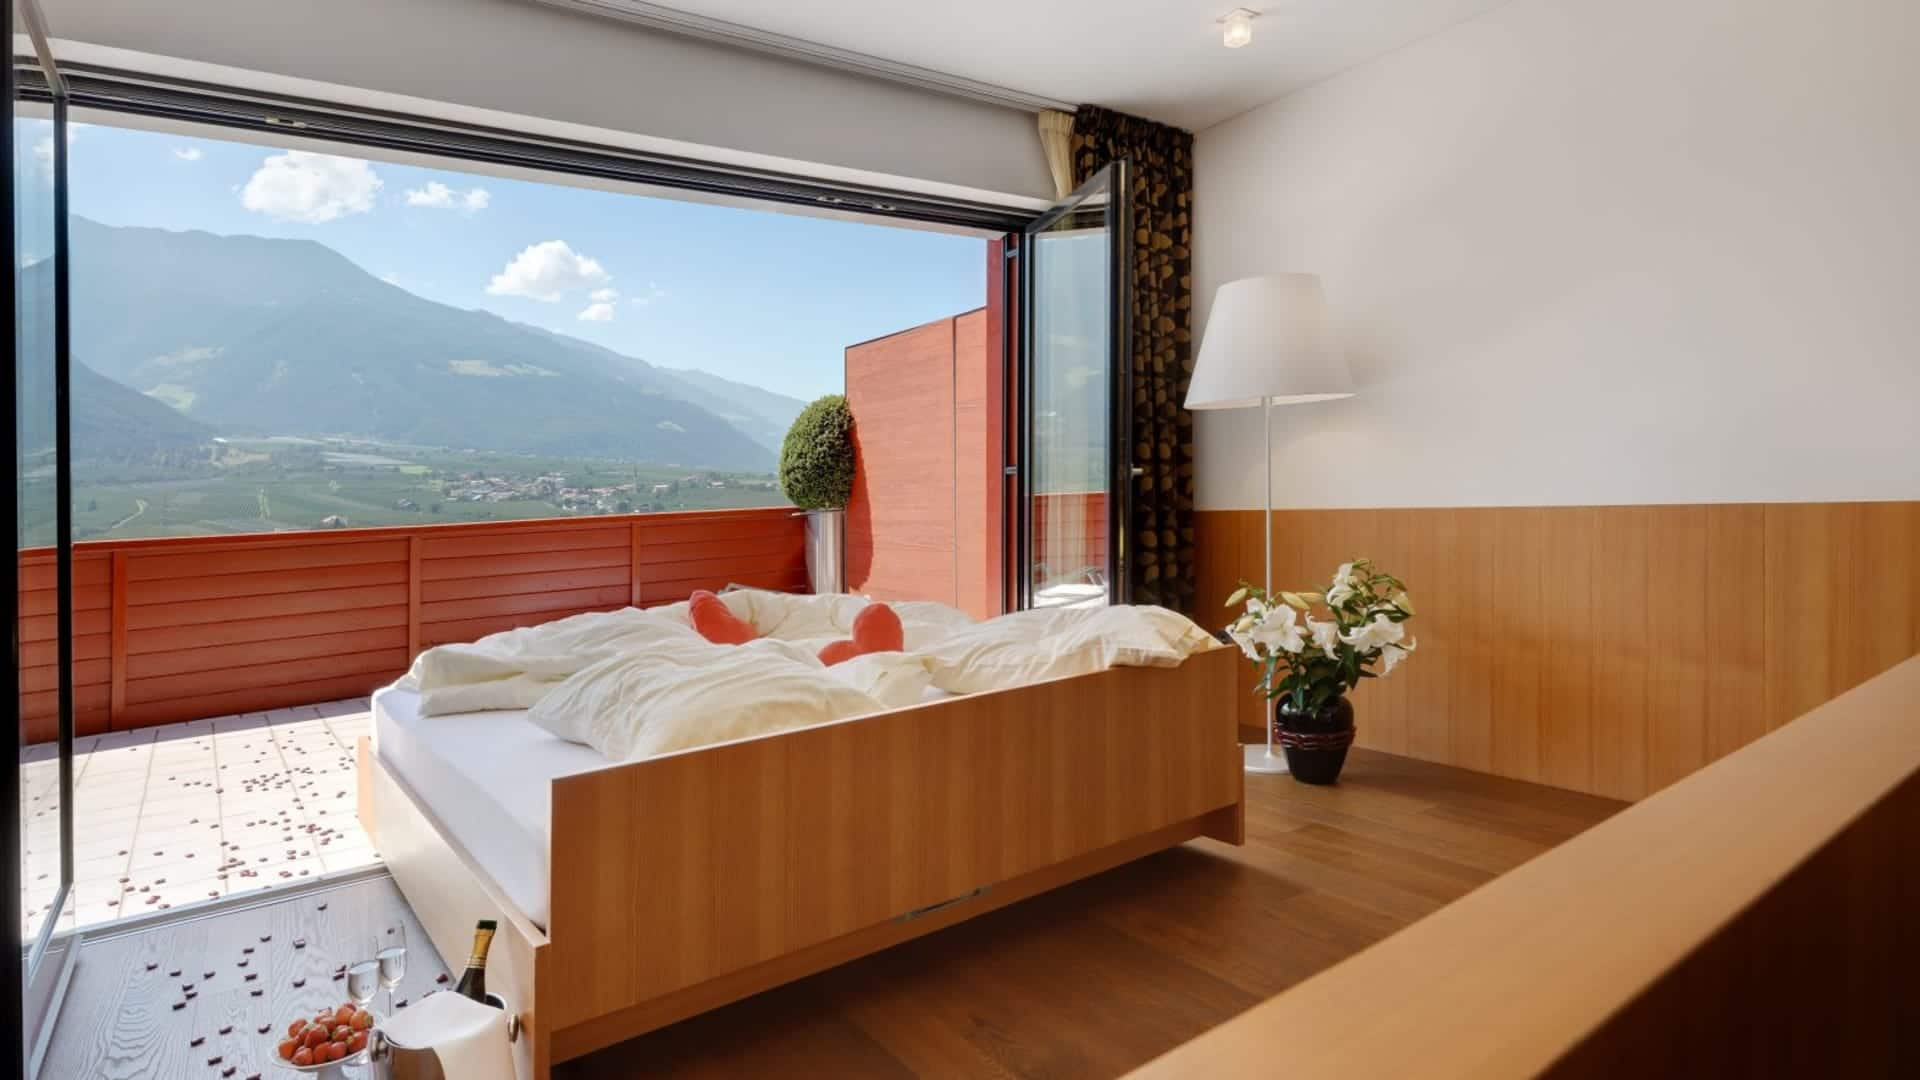 Honeymoon-Suite mit Ausblick